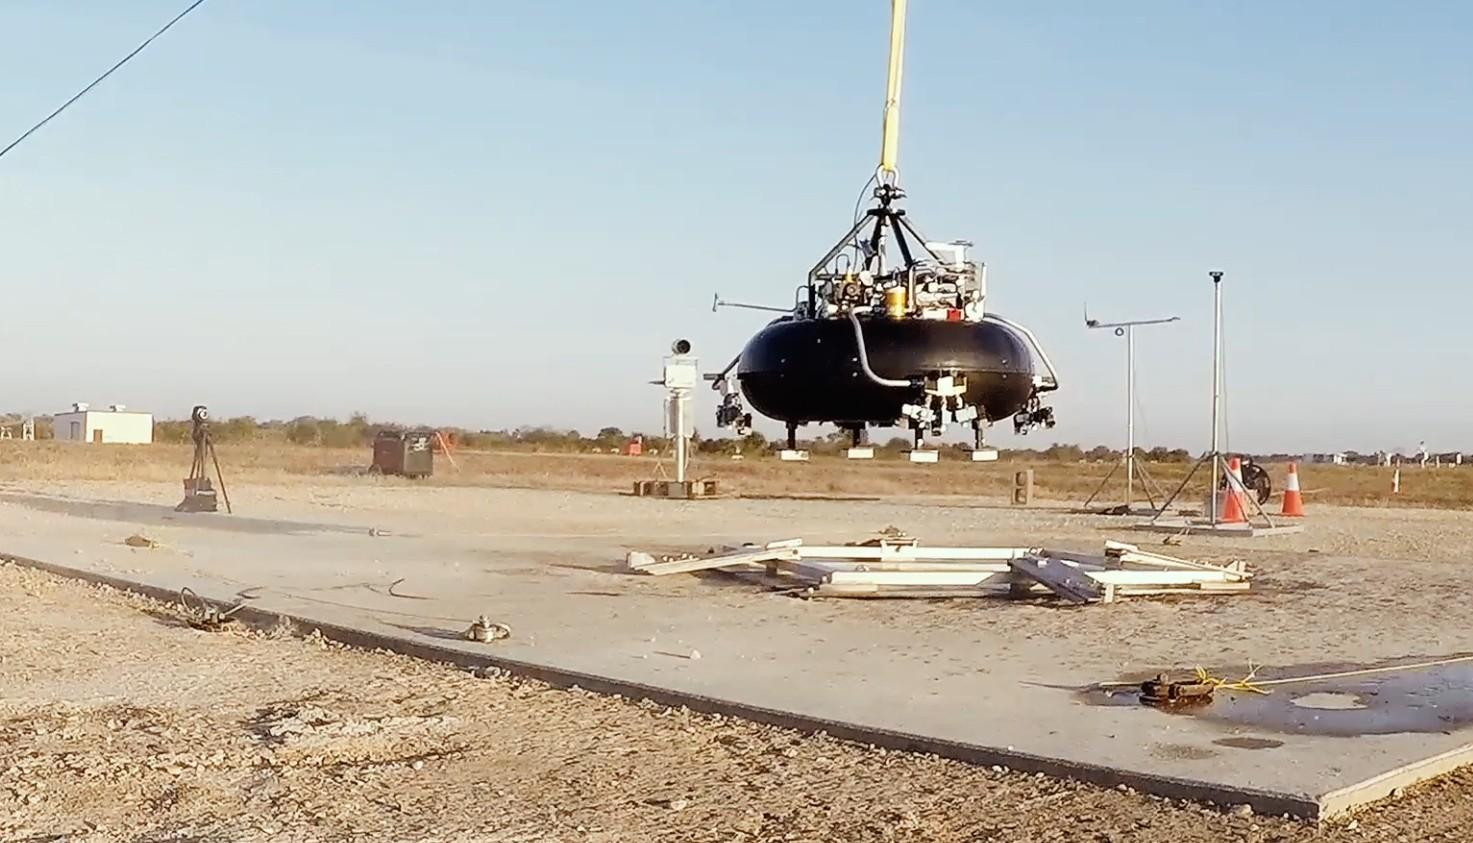 Google Lunar XPrize: Blasting off with Moon Express at Kennedy Space Center